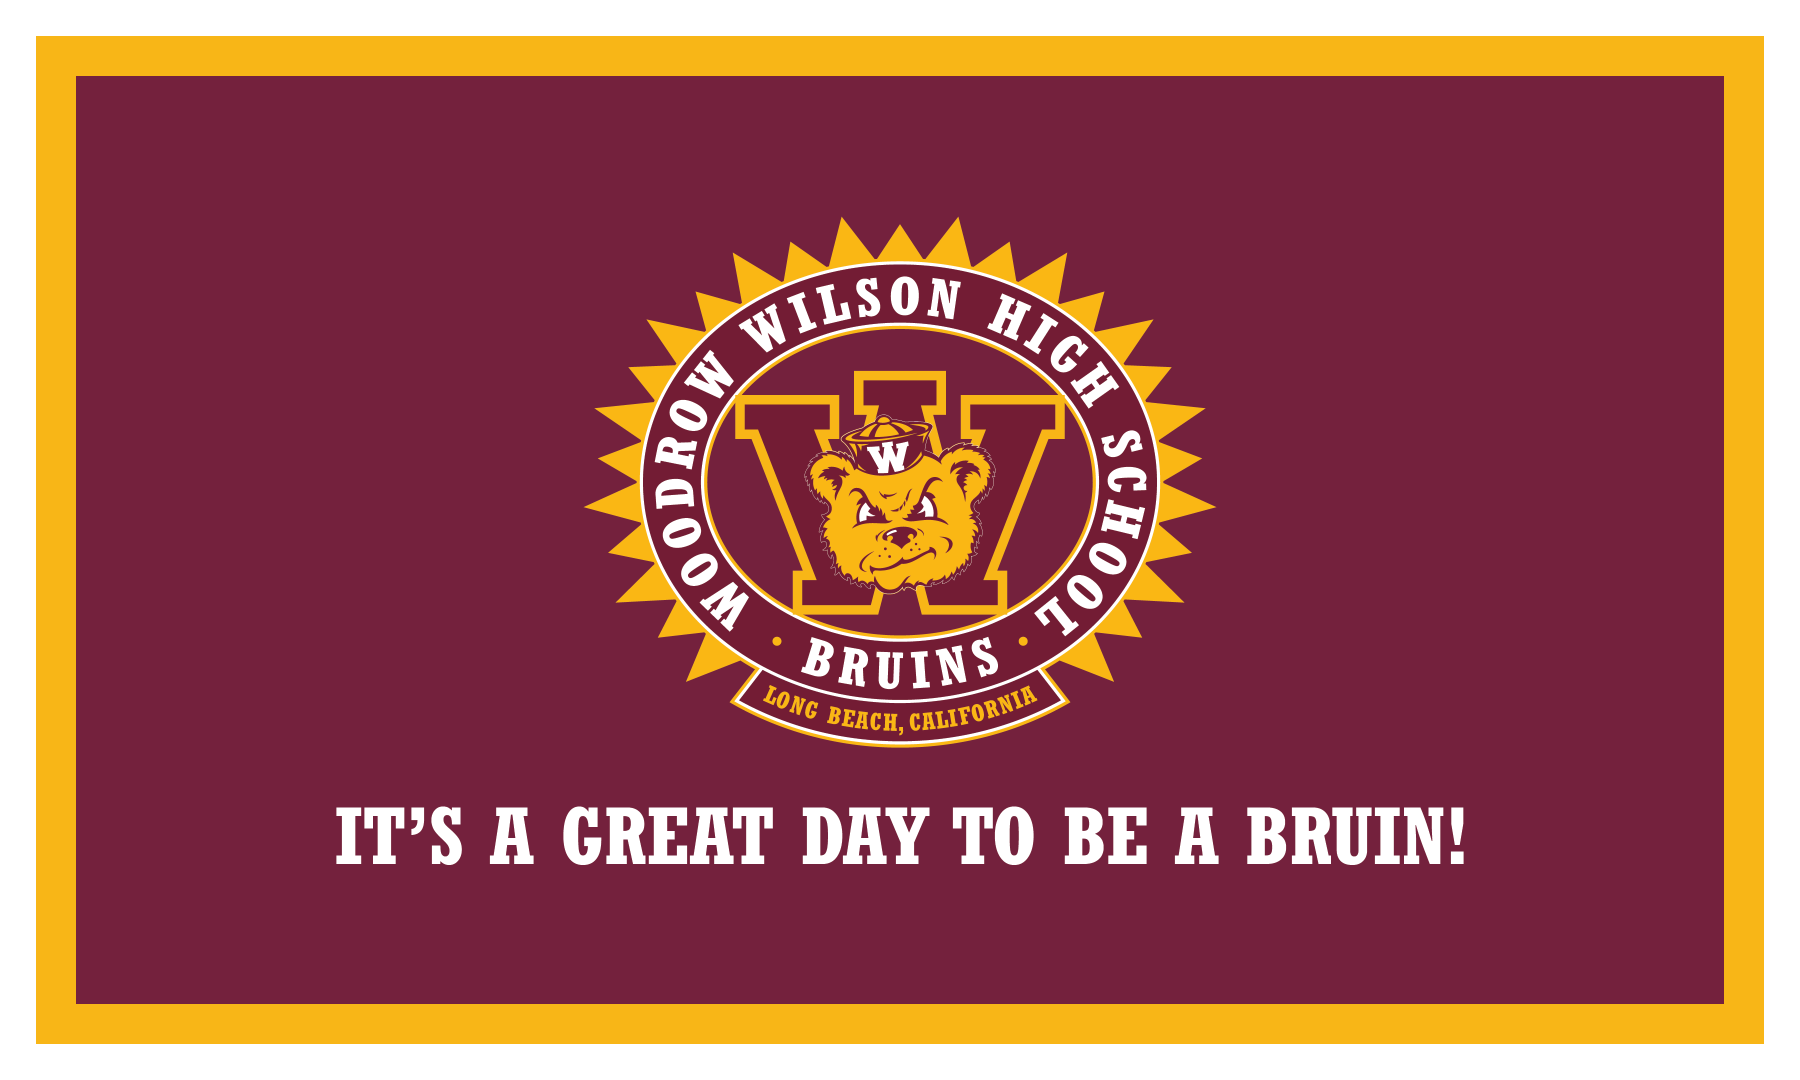 it's a great day to be a bruin